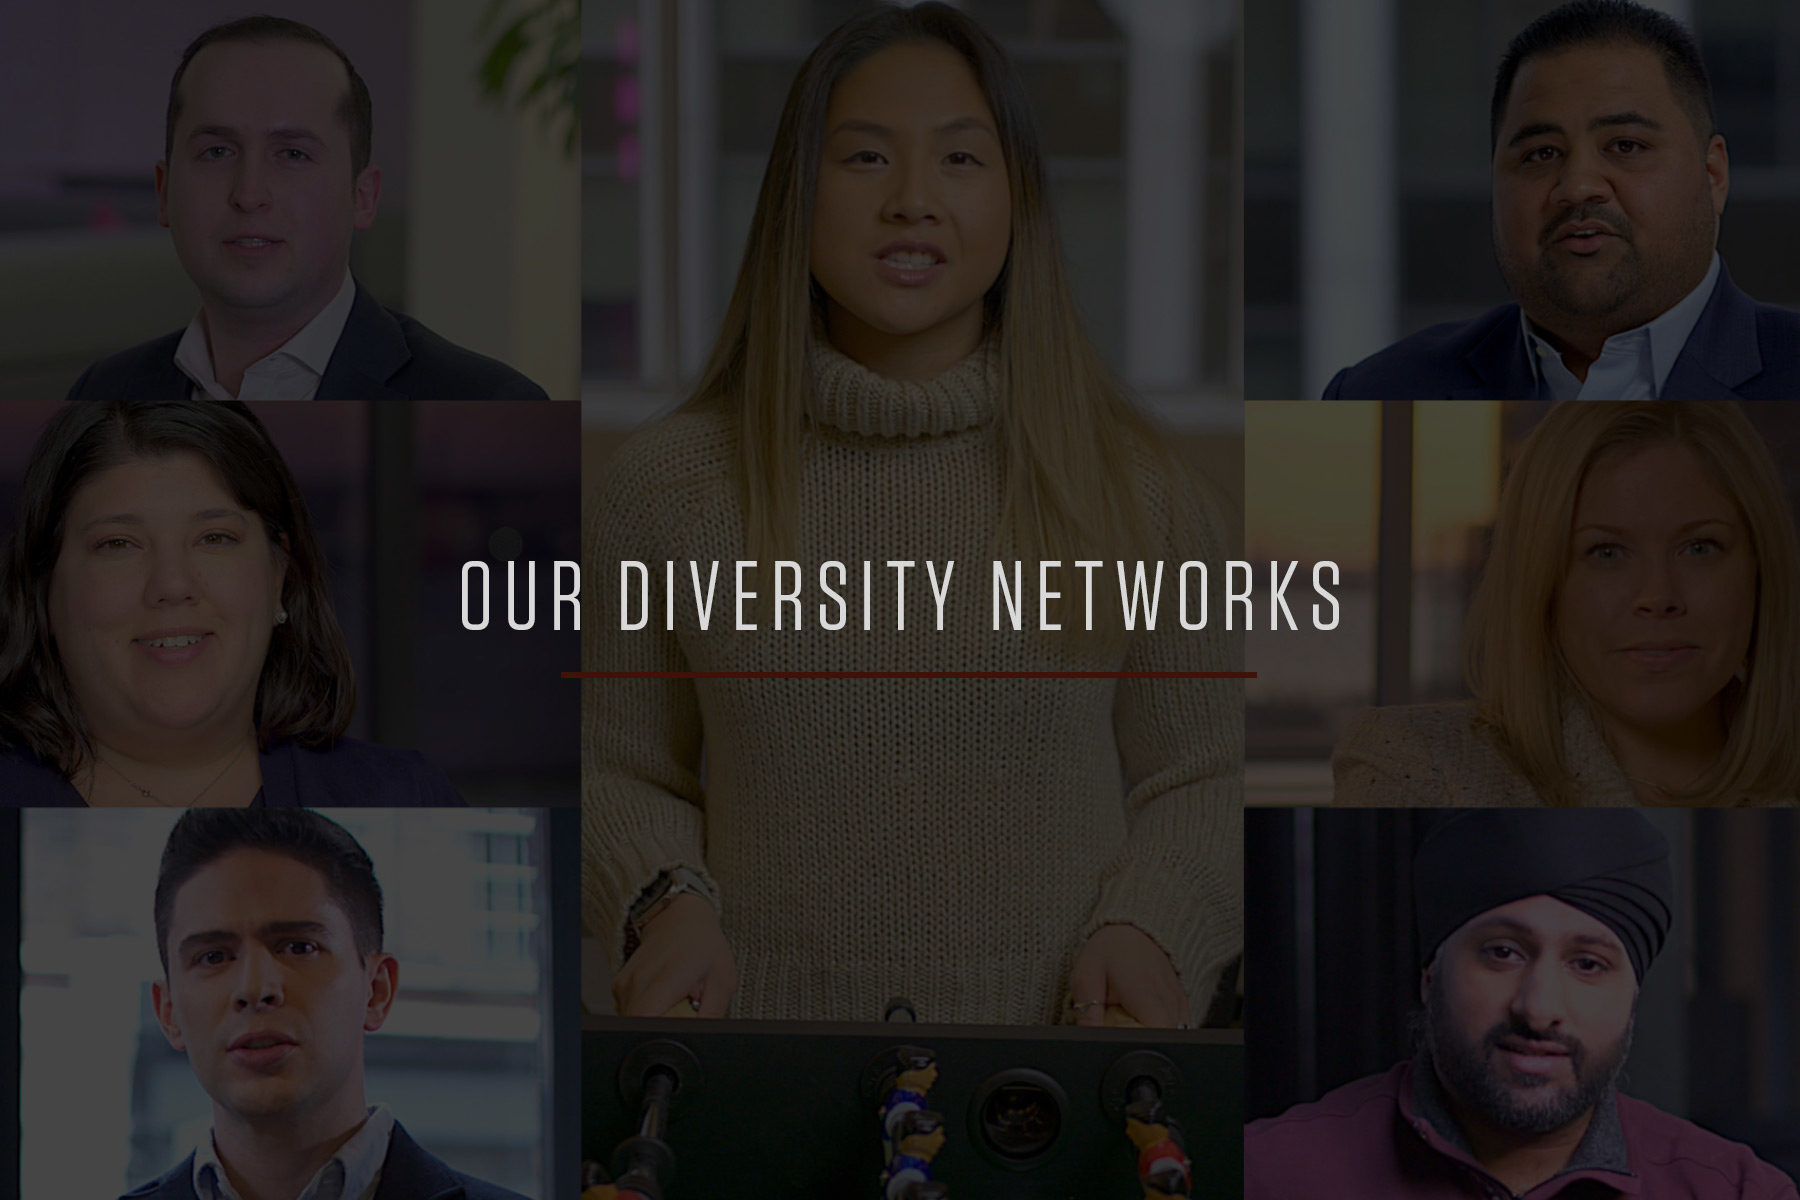 Capco D&I - Our Diversity Networks